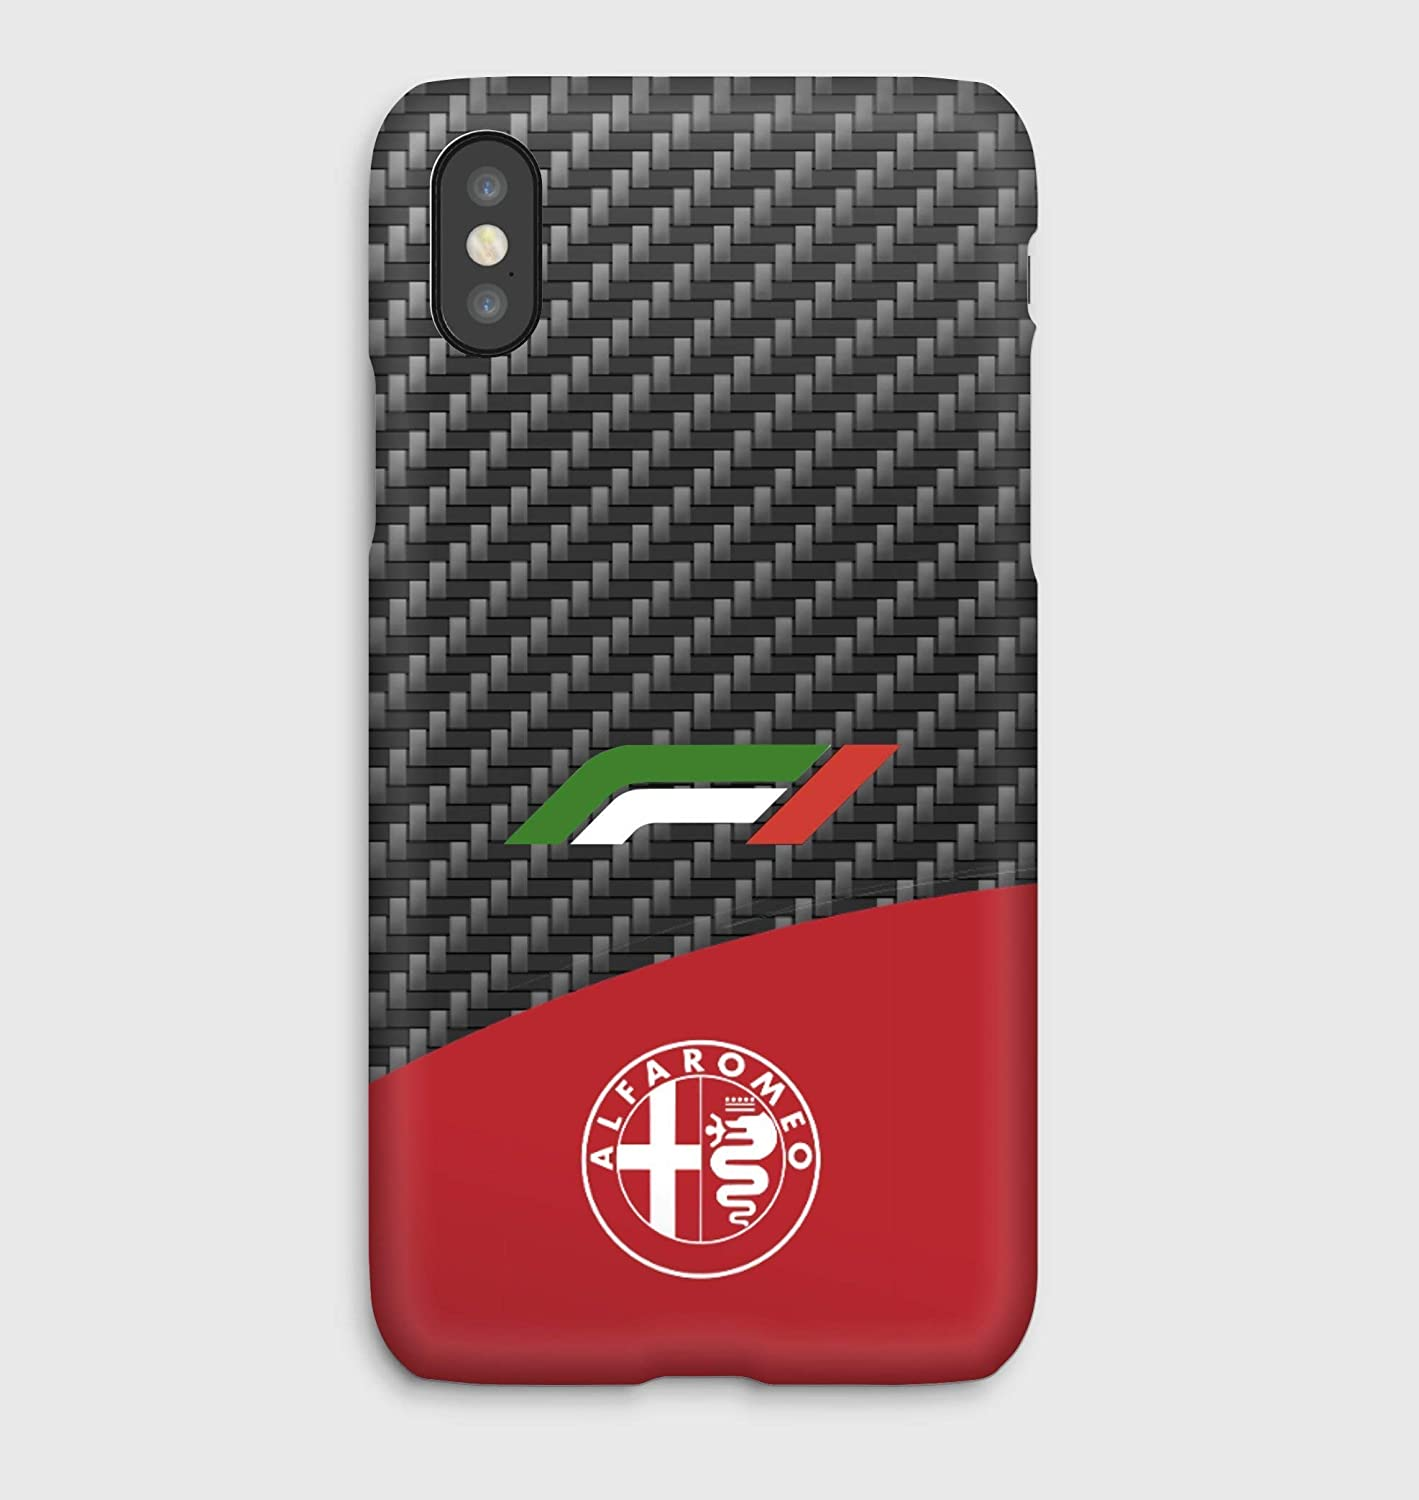 F1 Alfa Romeo iPhone cas 4, 4S, 5, 5SE, 5S, 5C, 6, 6S, 6S + 6+, 7, 7+, 8, 8+, iPhone X,